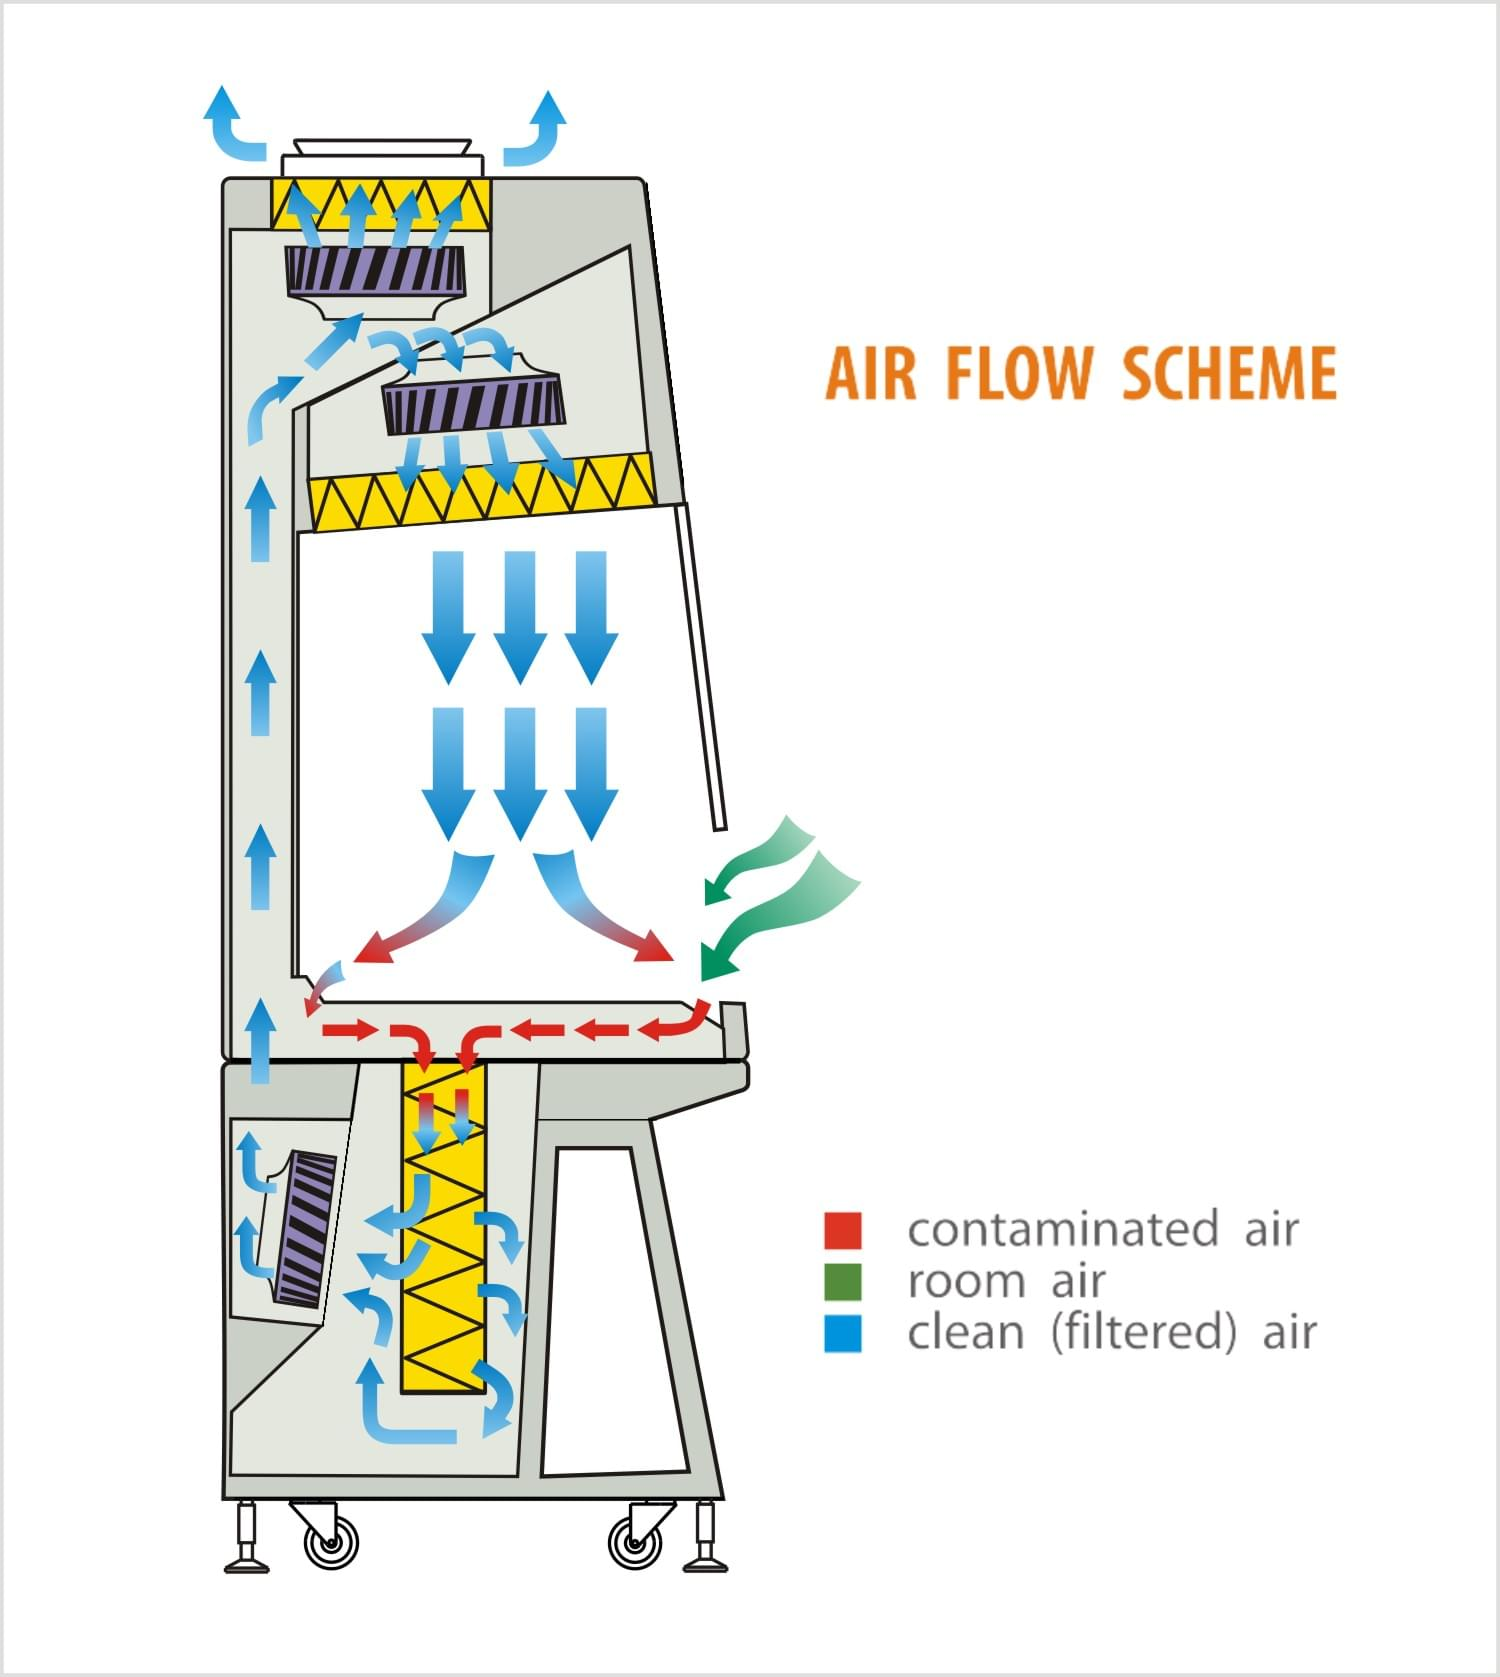 Air flow scheme - Microbiological Safety Cabinet Class 2 (Biological Safety Cabinet Class 2)